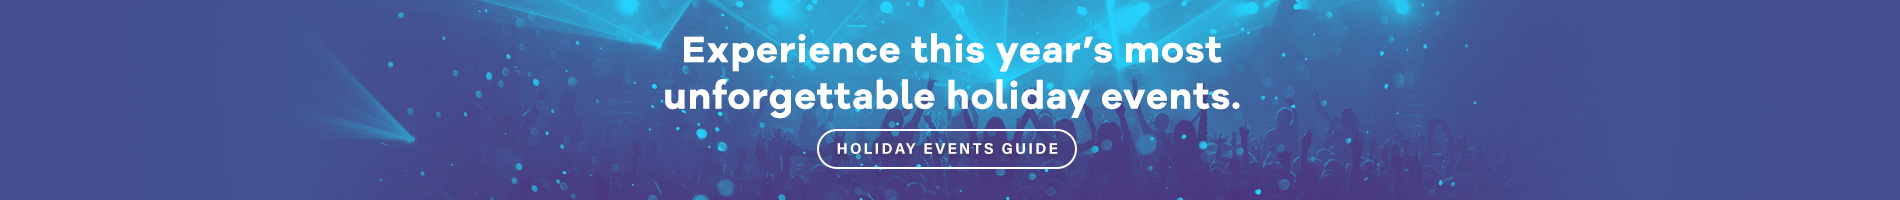 Holiday Events Guide